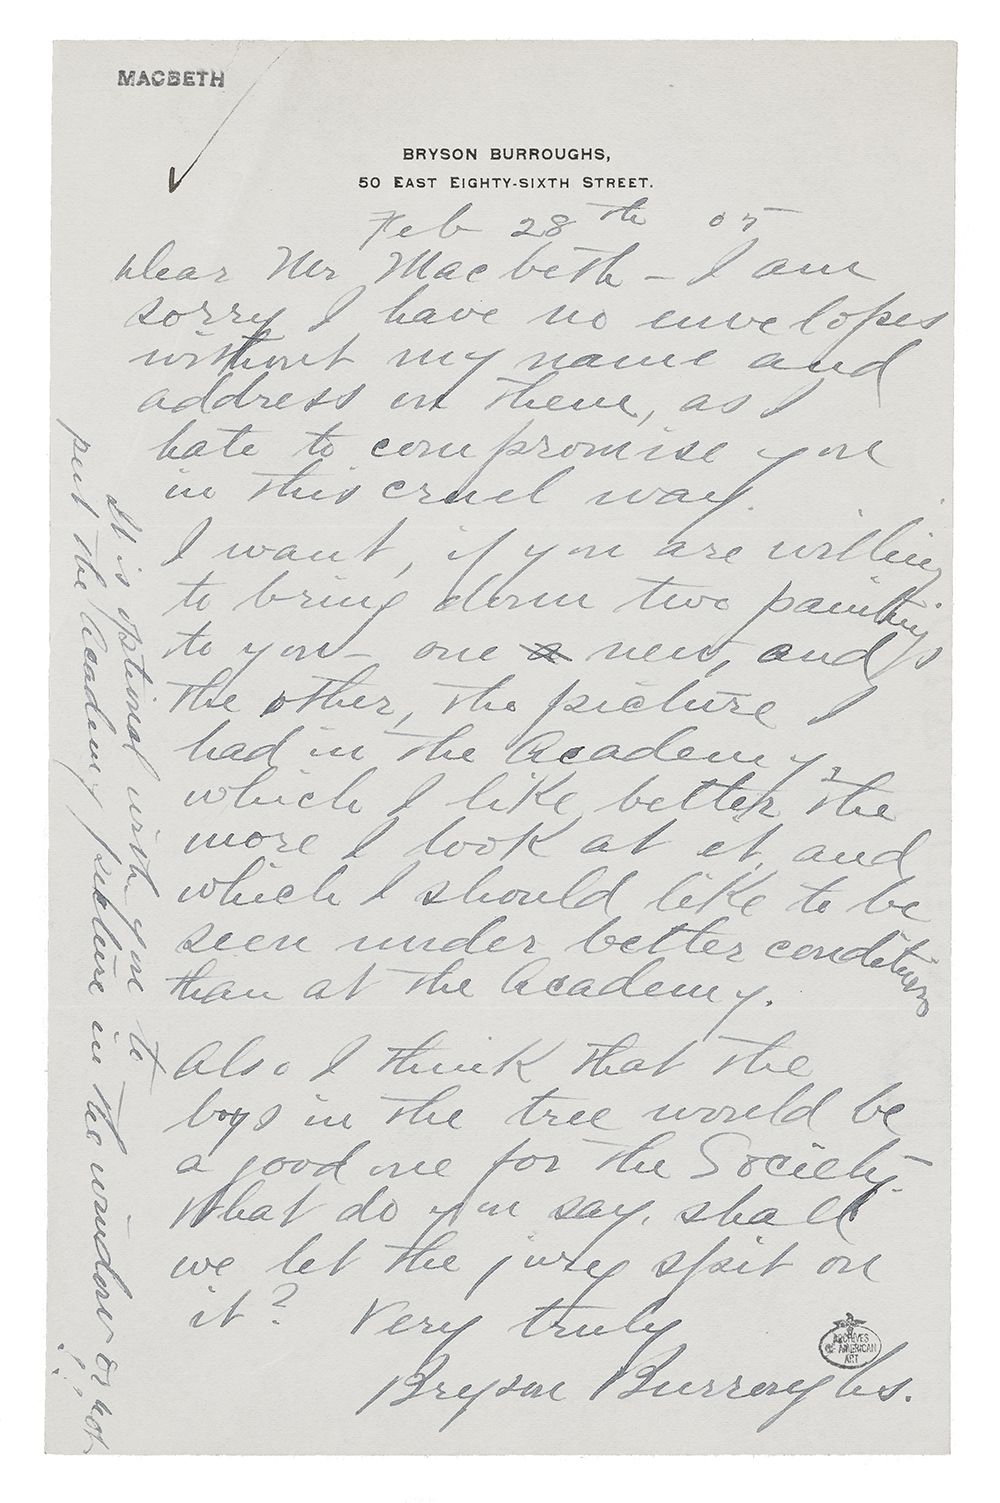 Letter to William Macbeth from Bryson Burroughs